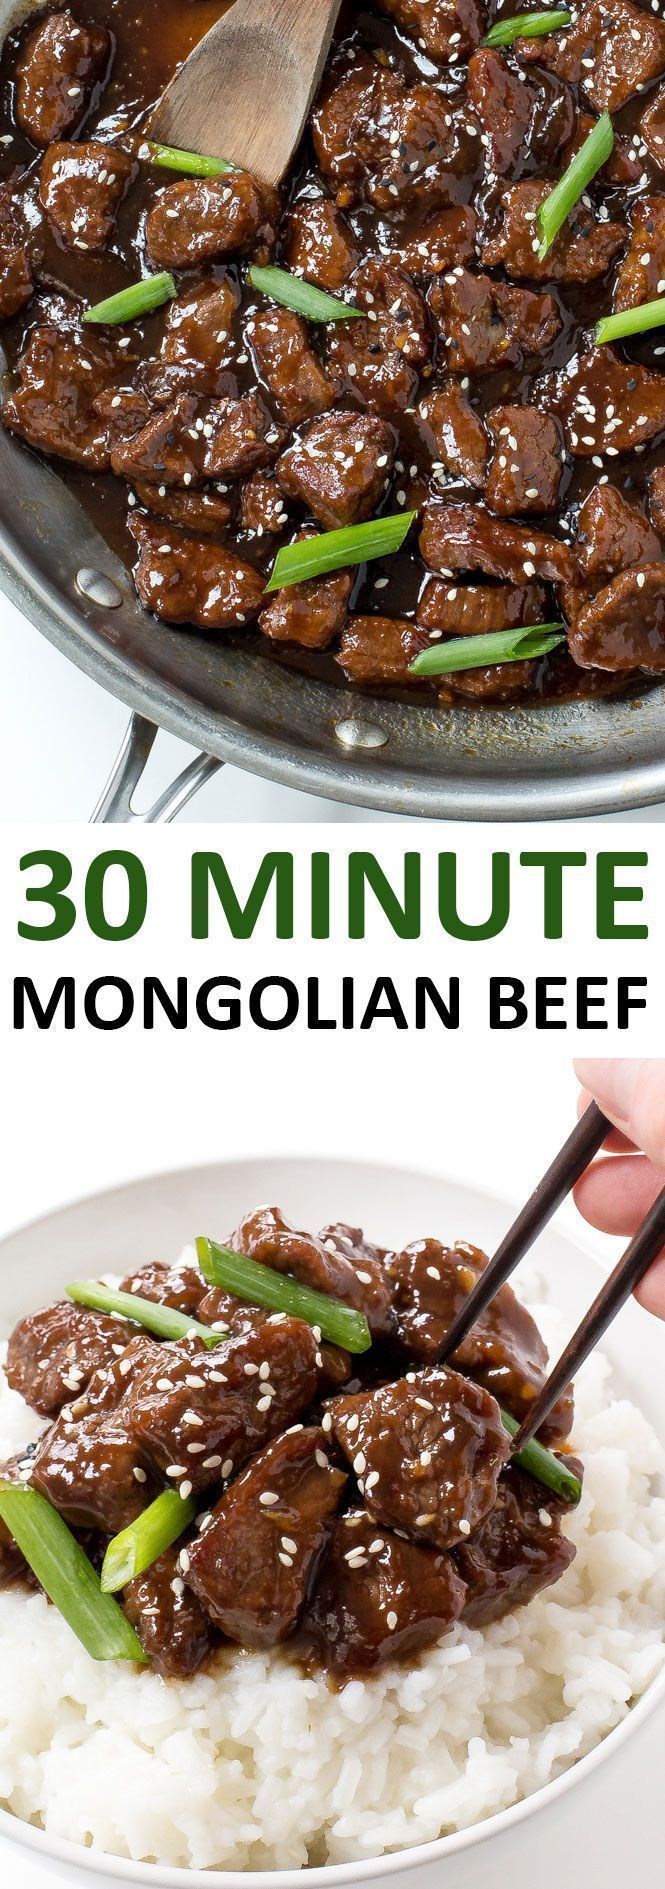 Amazing 30 Minute Mongolian Beef. Tender flank steak fried and tossed in a thick Asian inspired sauce. Way better than takeout! | Posted By: http://DebbieNet.com